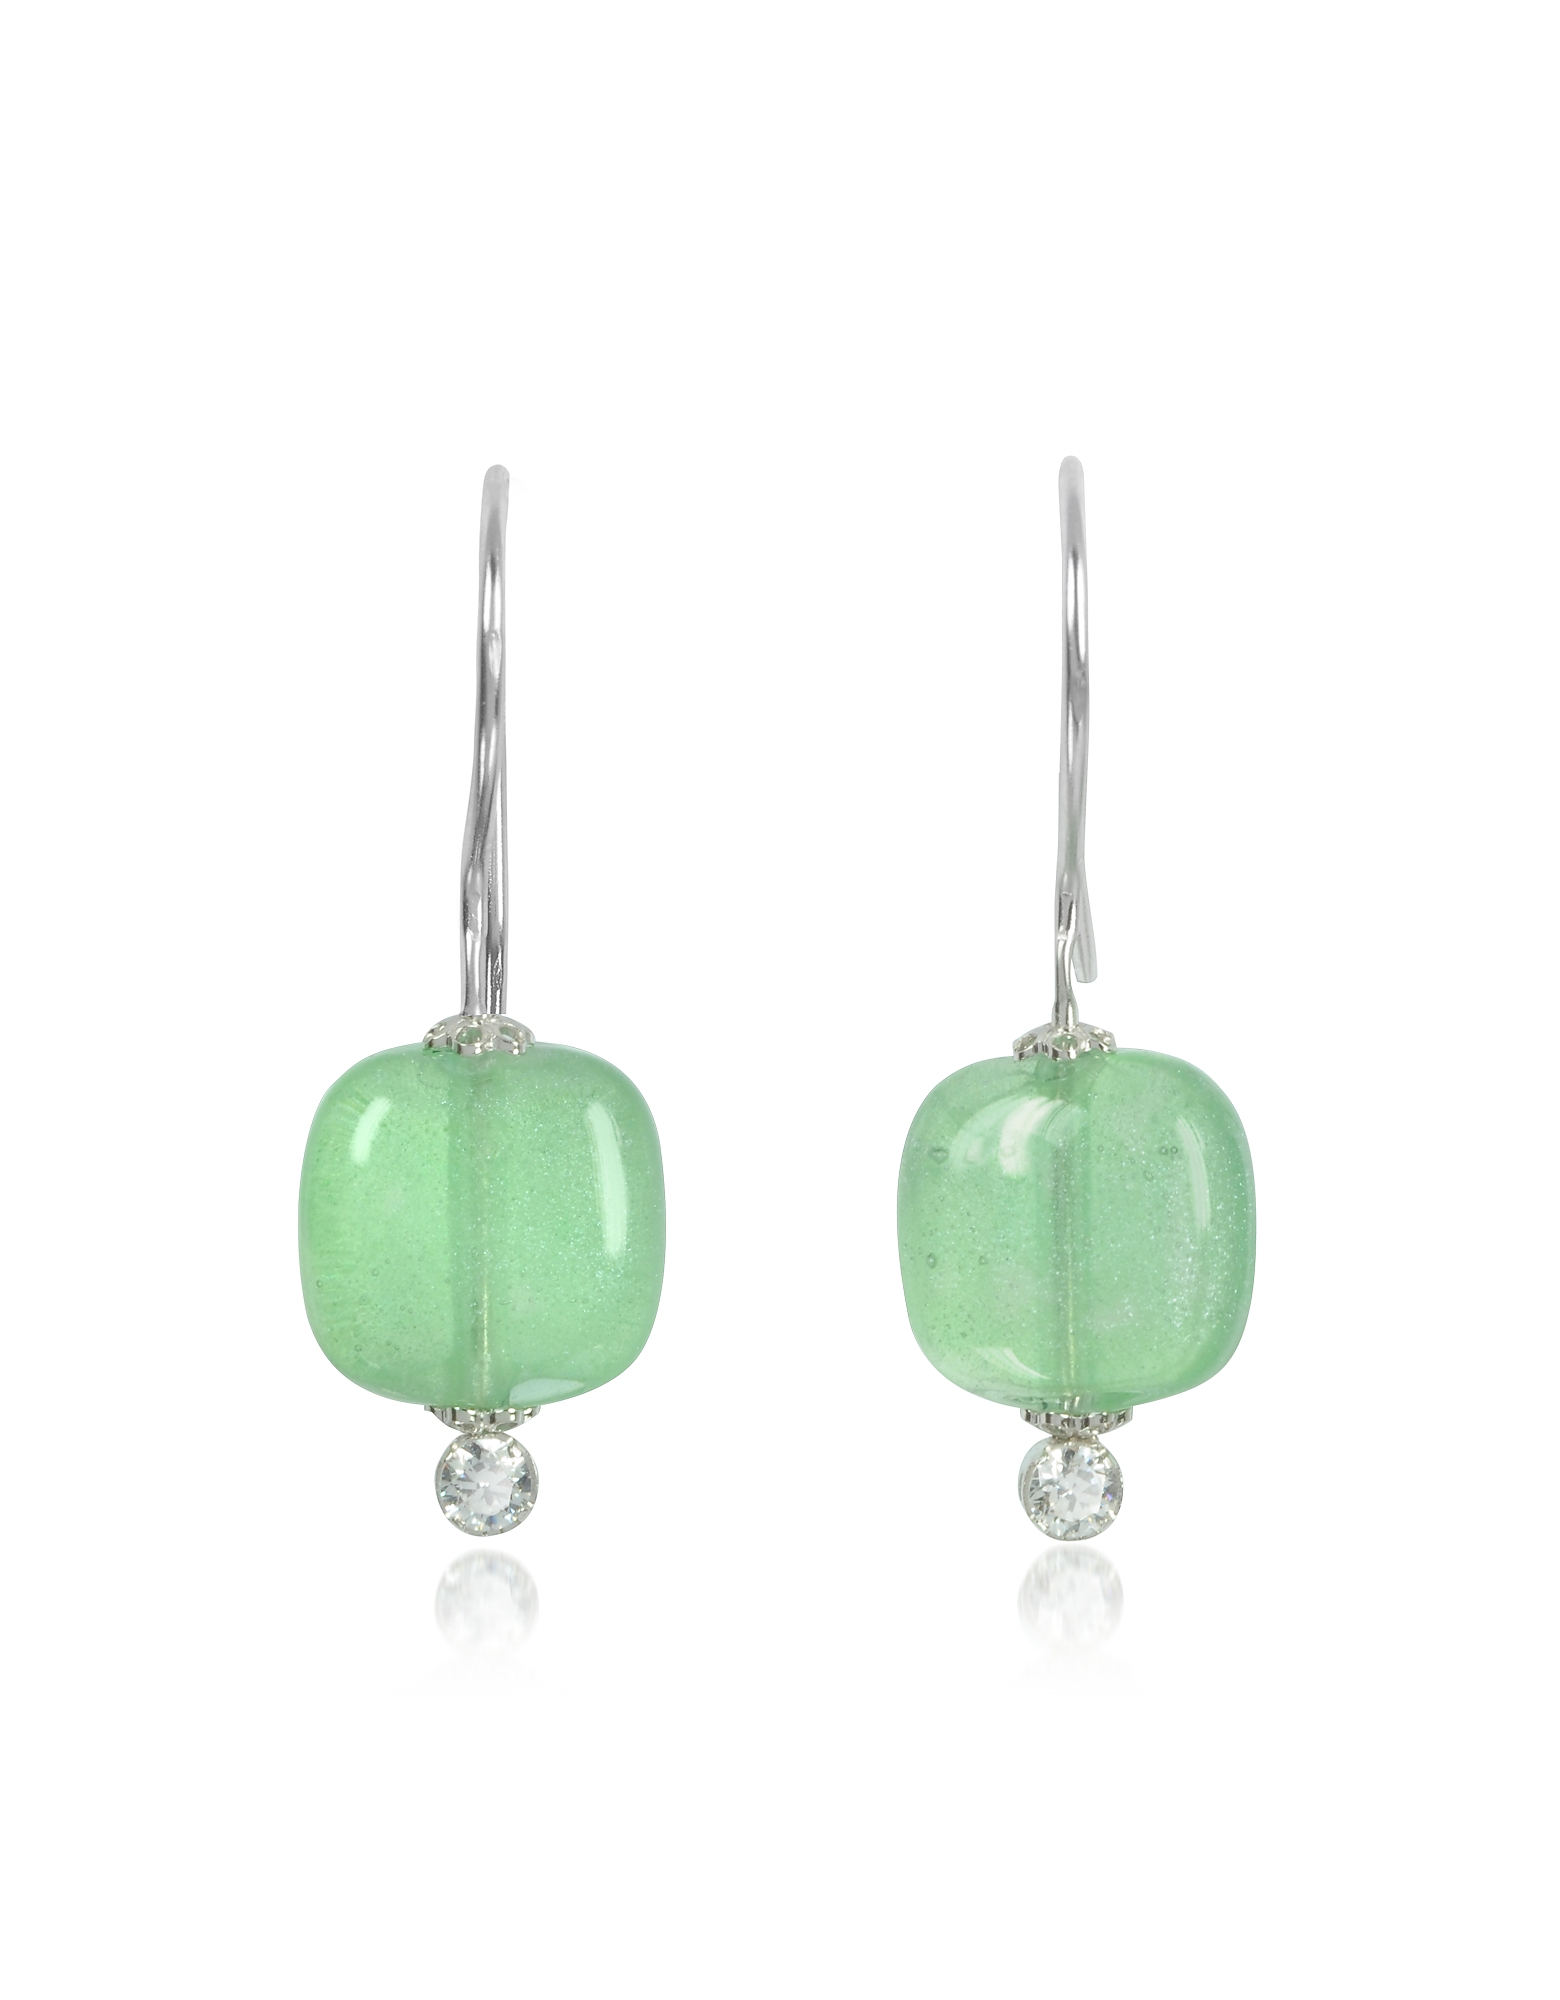 Antica Murrina Earrings, Florinda Green Murano Glass Sterling Silver Earrings